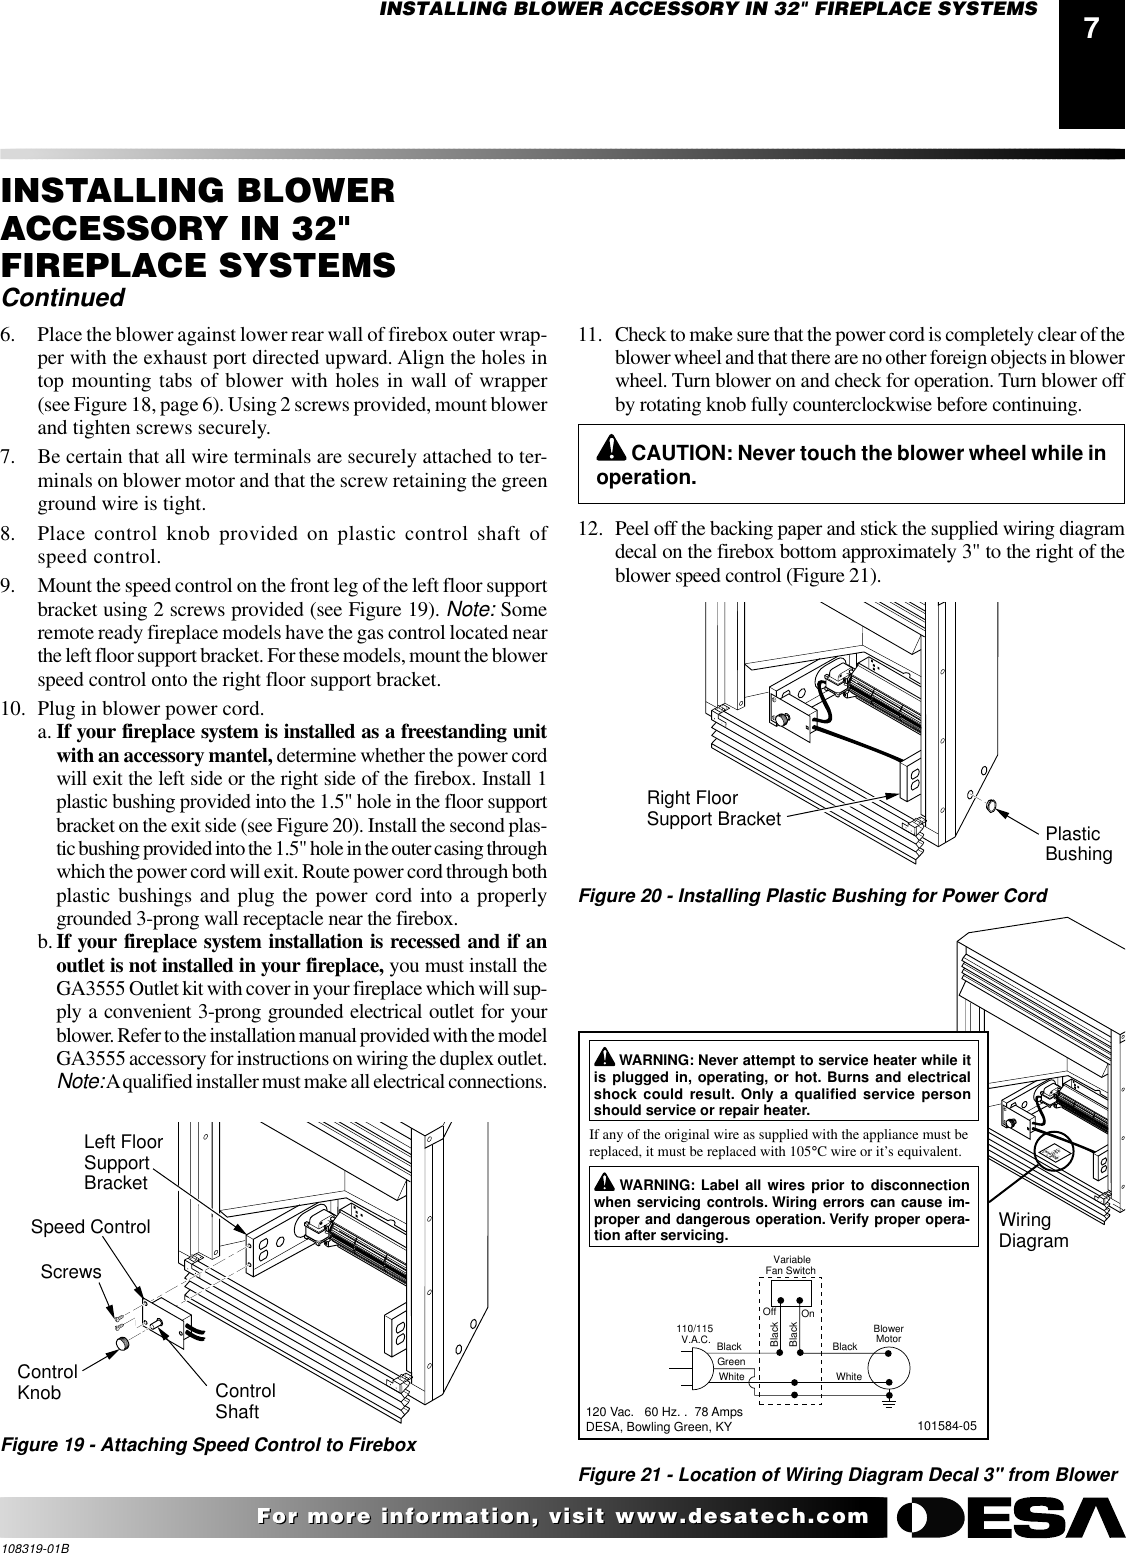 Desa Ga3750a Users Manual 3 Speed 115 Volt Bloweer Motor Wiring Schematic Page 7 Of 12